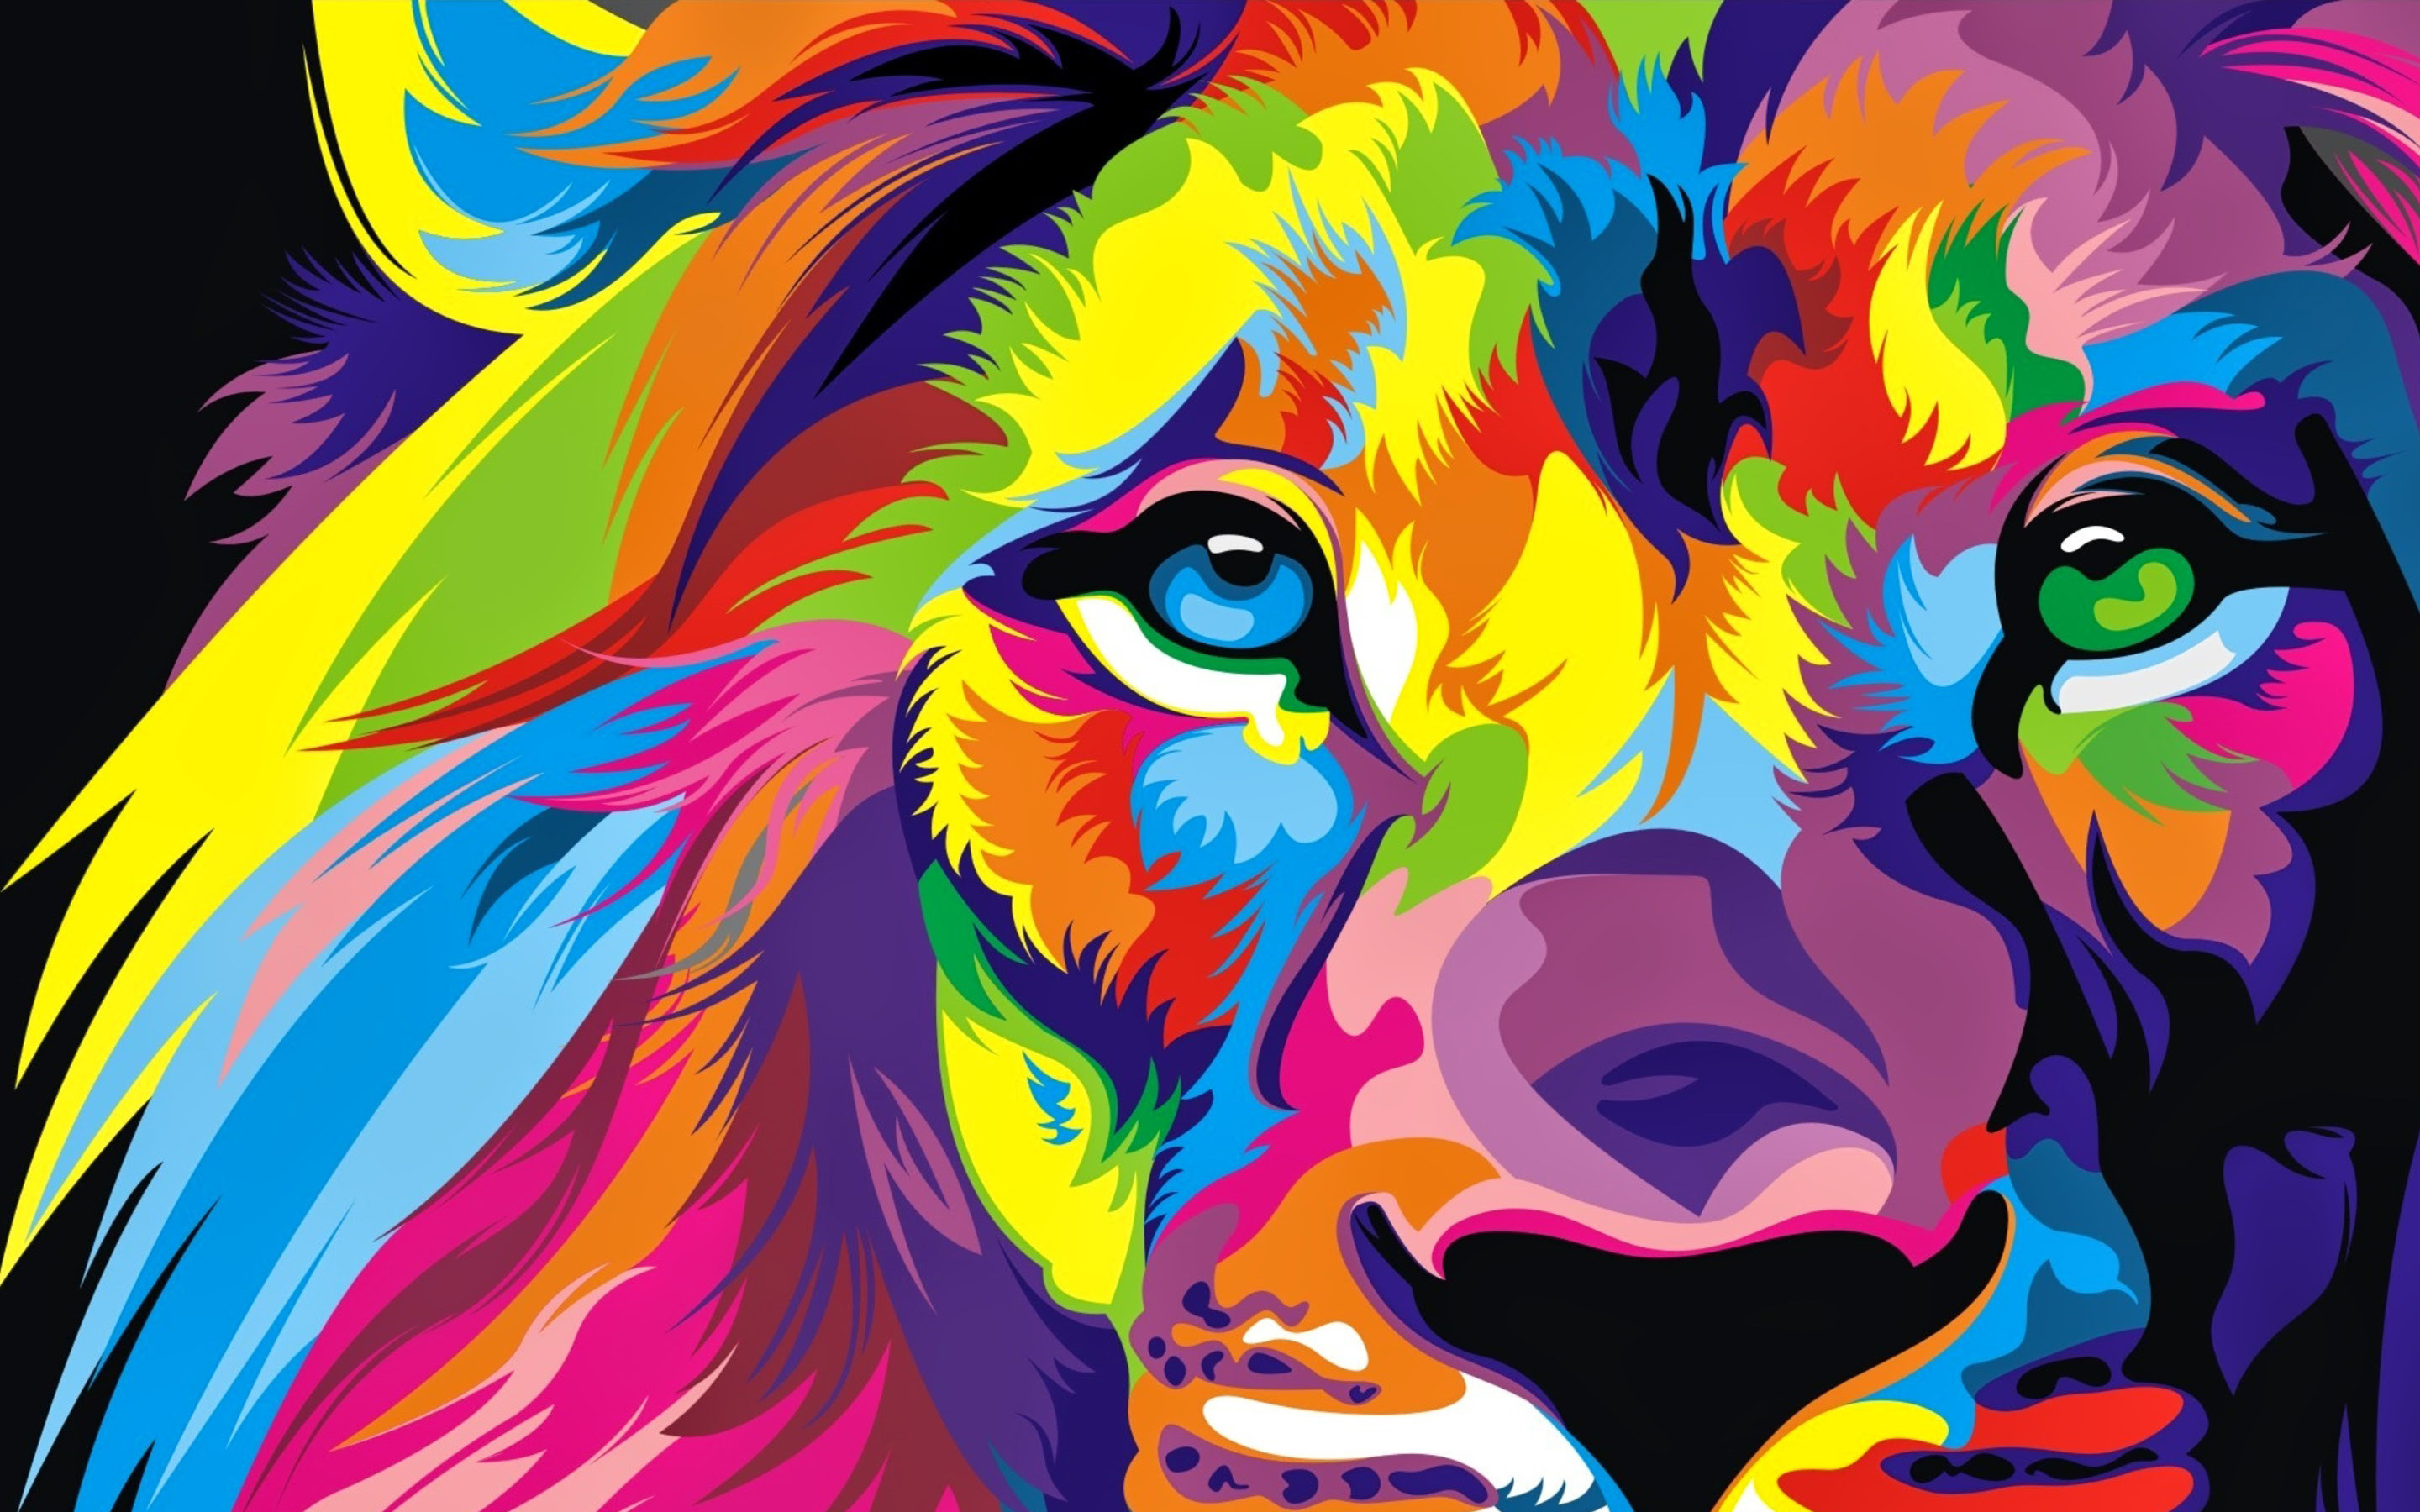 Lion Colorful Artwork4715716846 - Lion Colorful Artwork - Lion, Colorful, Batman, Artwork